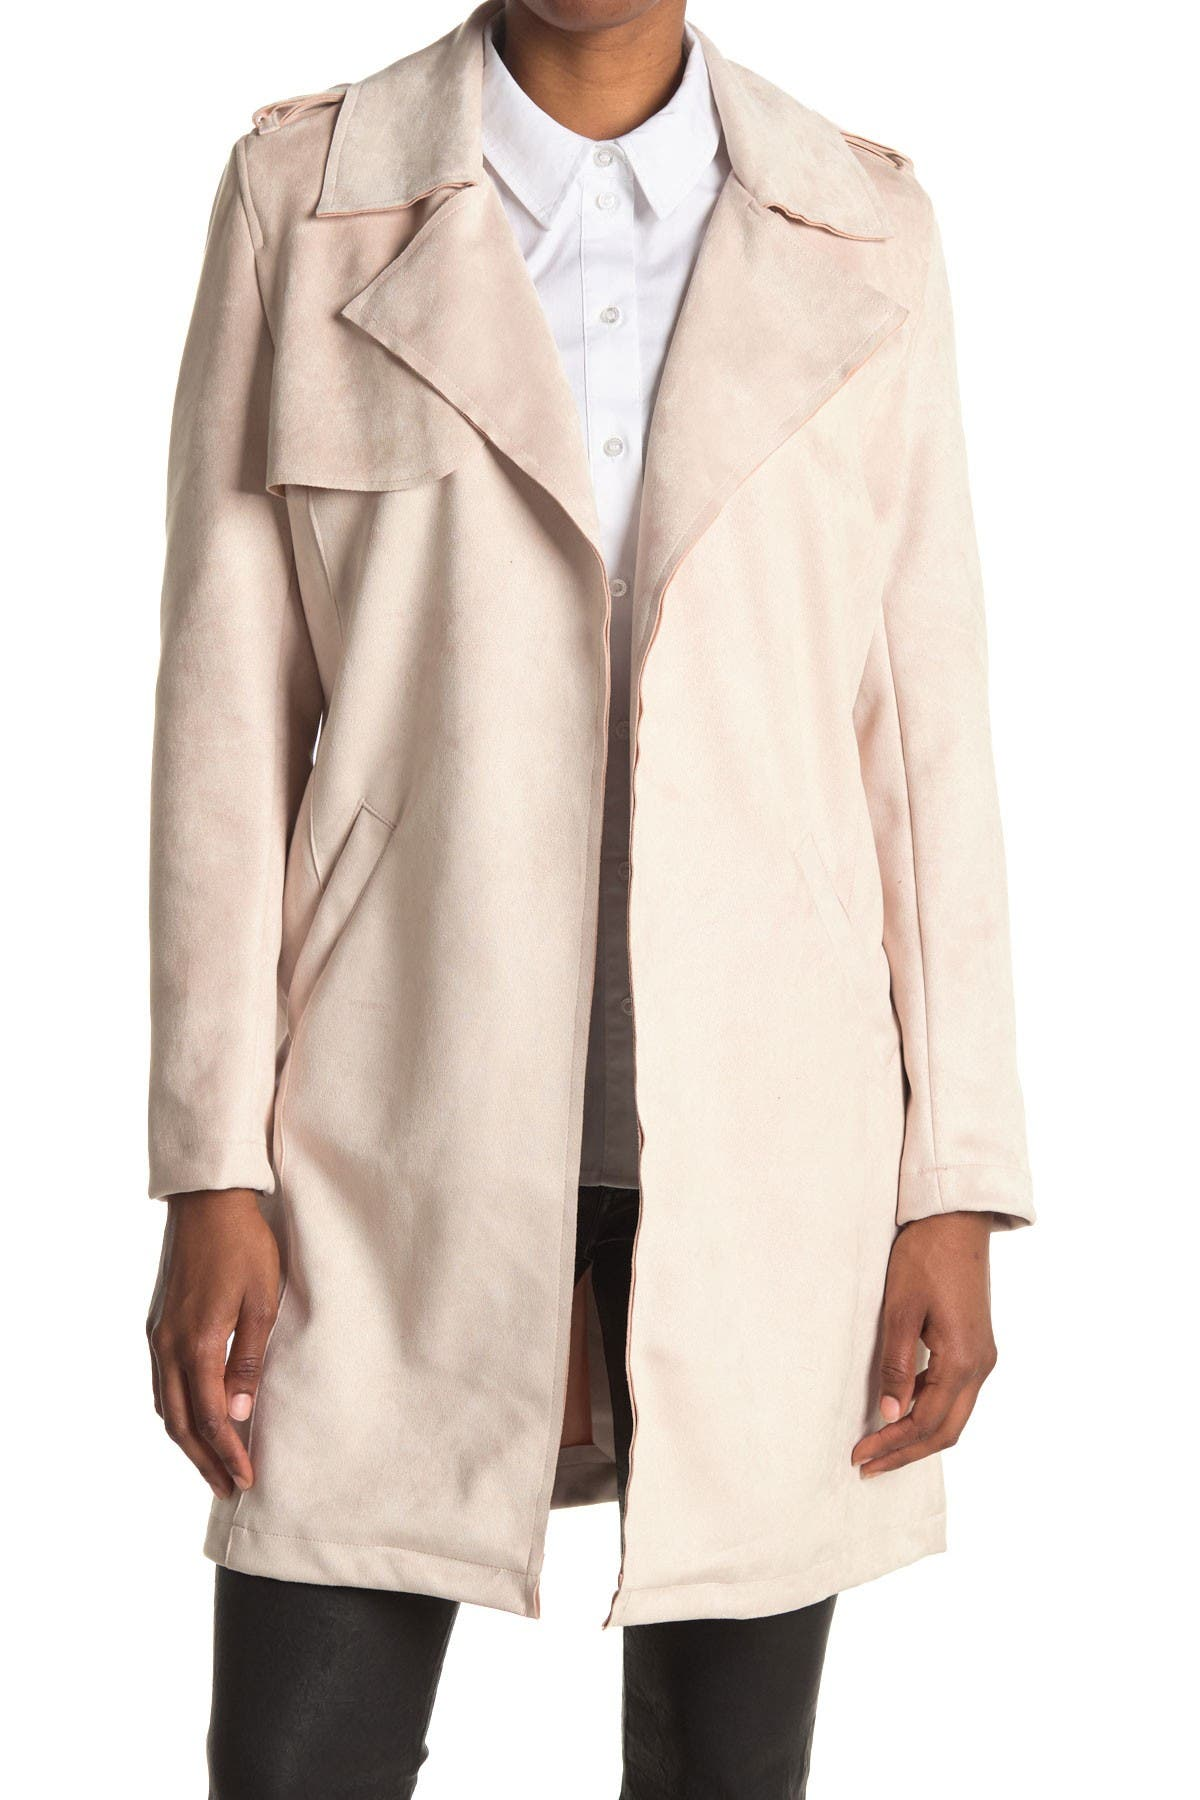 Image of OOKIE & LALA Faux Suede Trench Coat